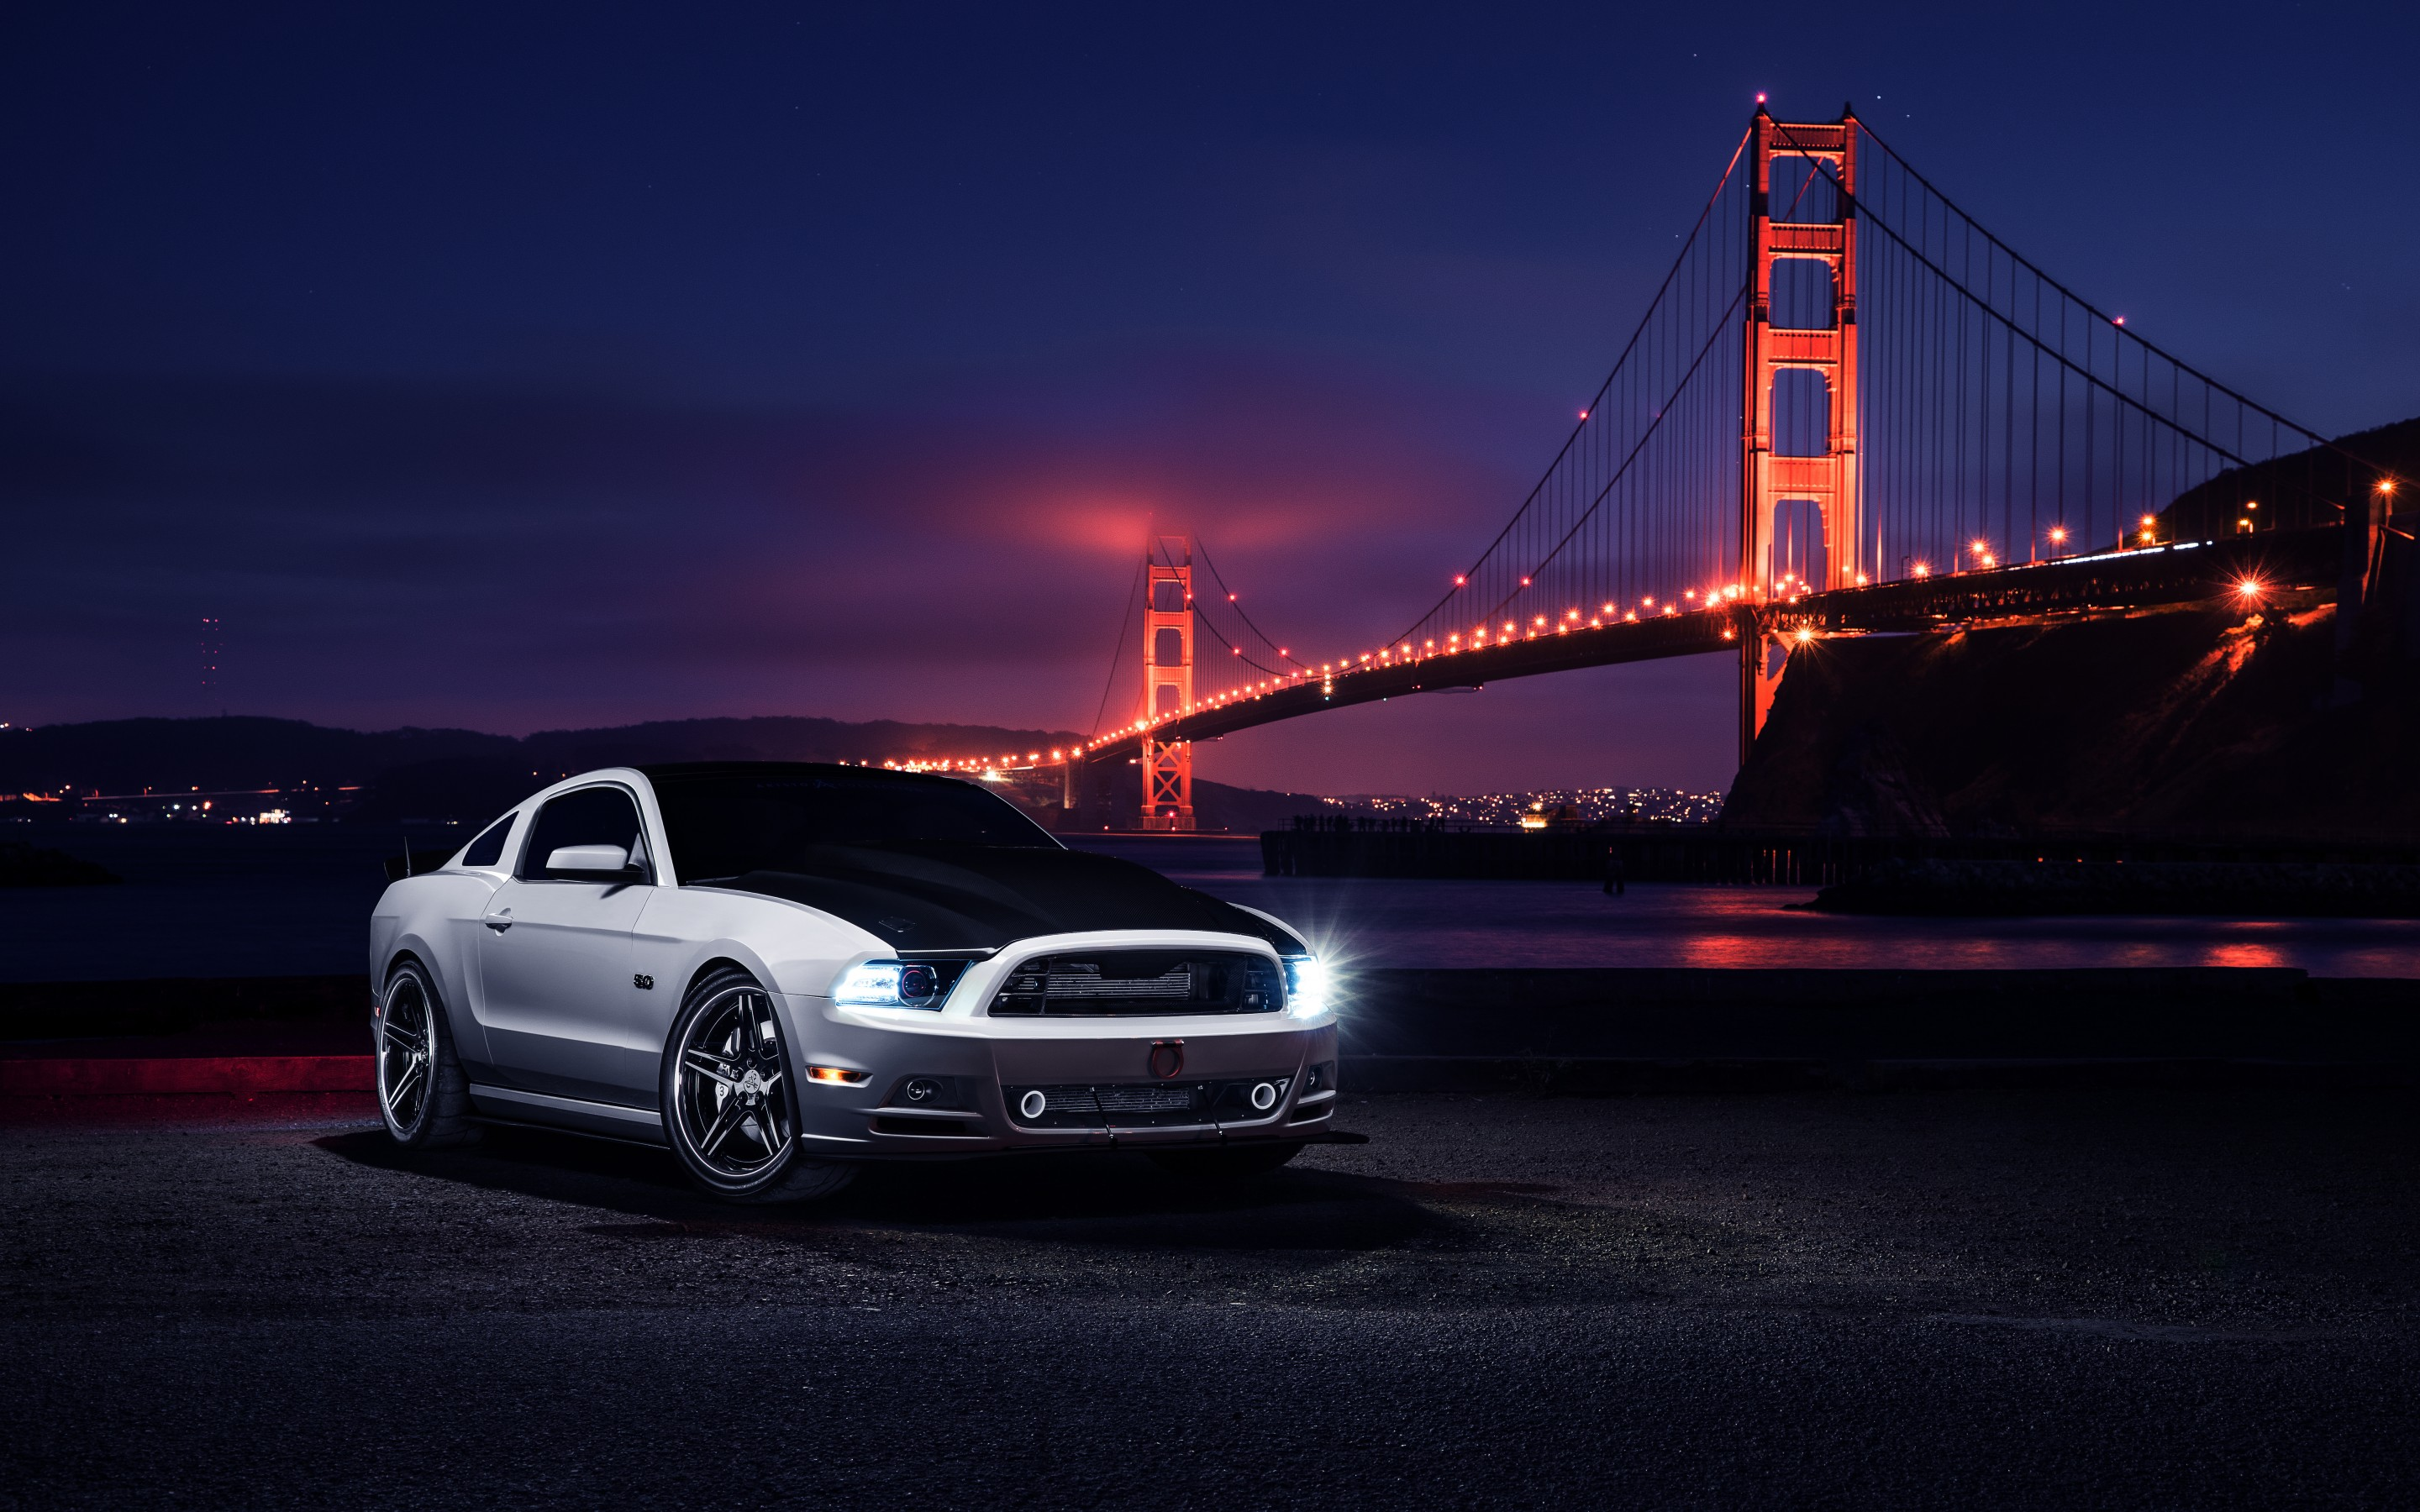 71902 download wallpaper Auto, Night, Ford, Mustang, Cars, Aristo screensavers and pictures for free